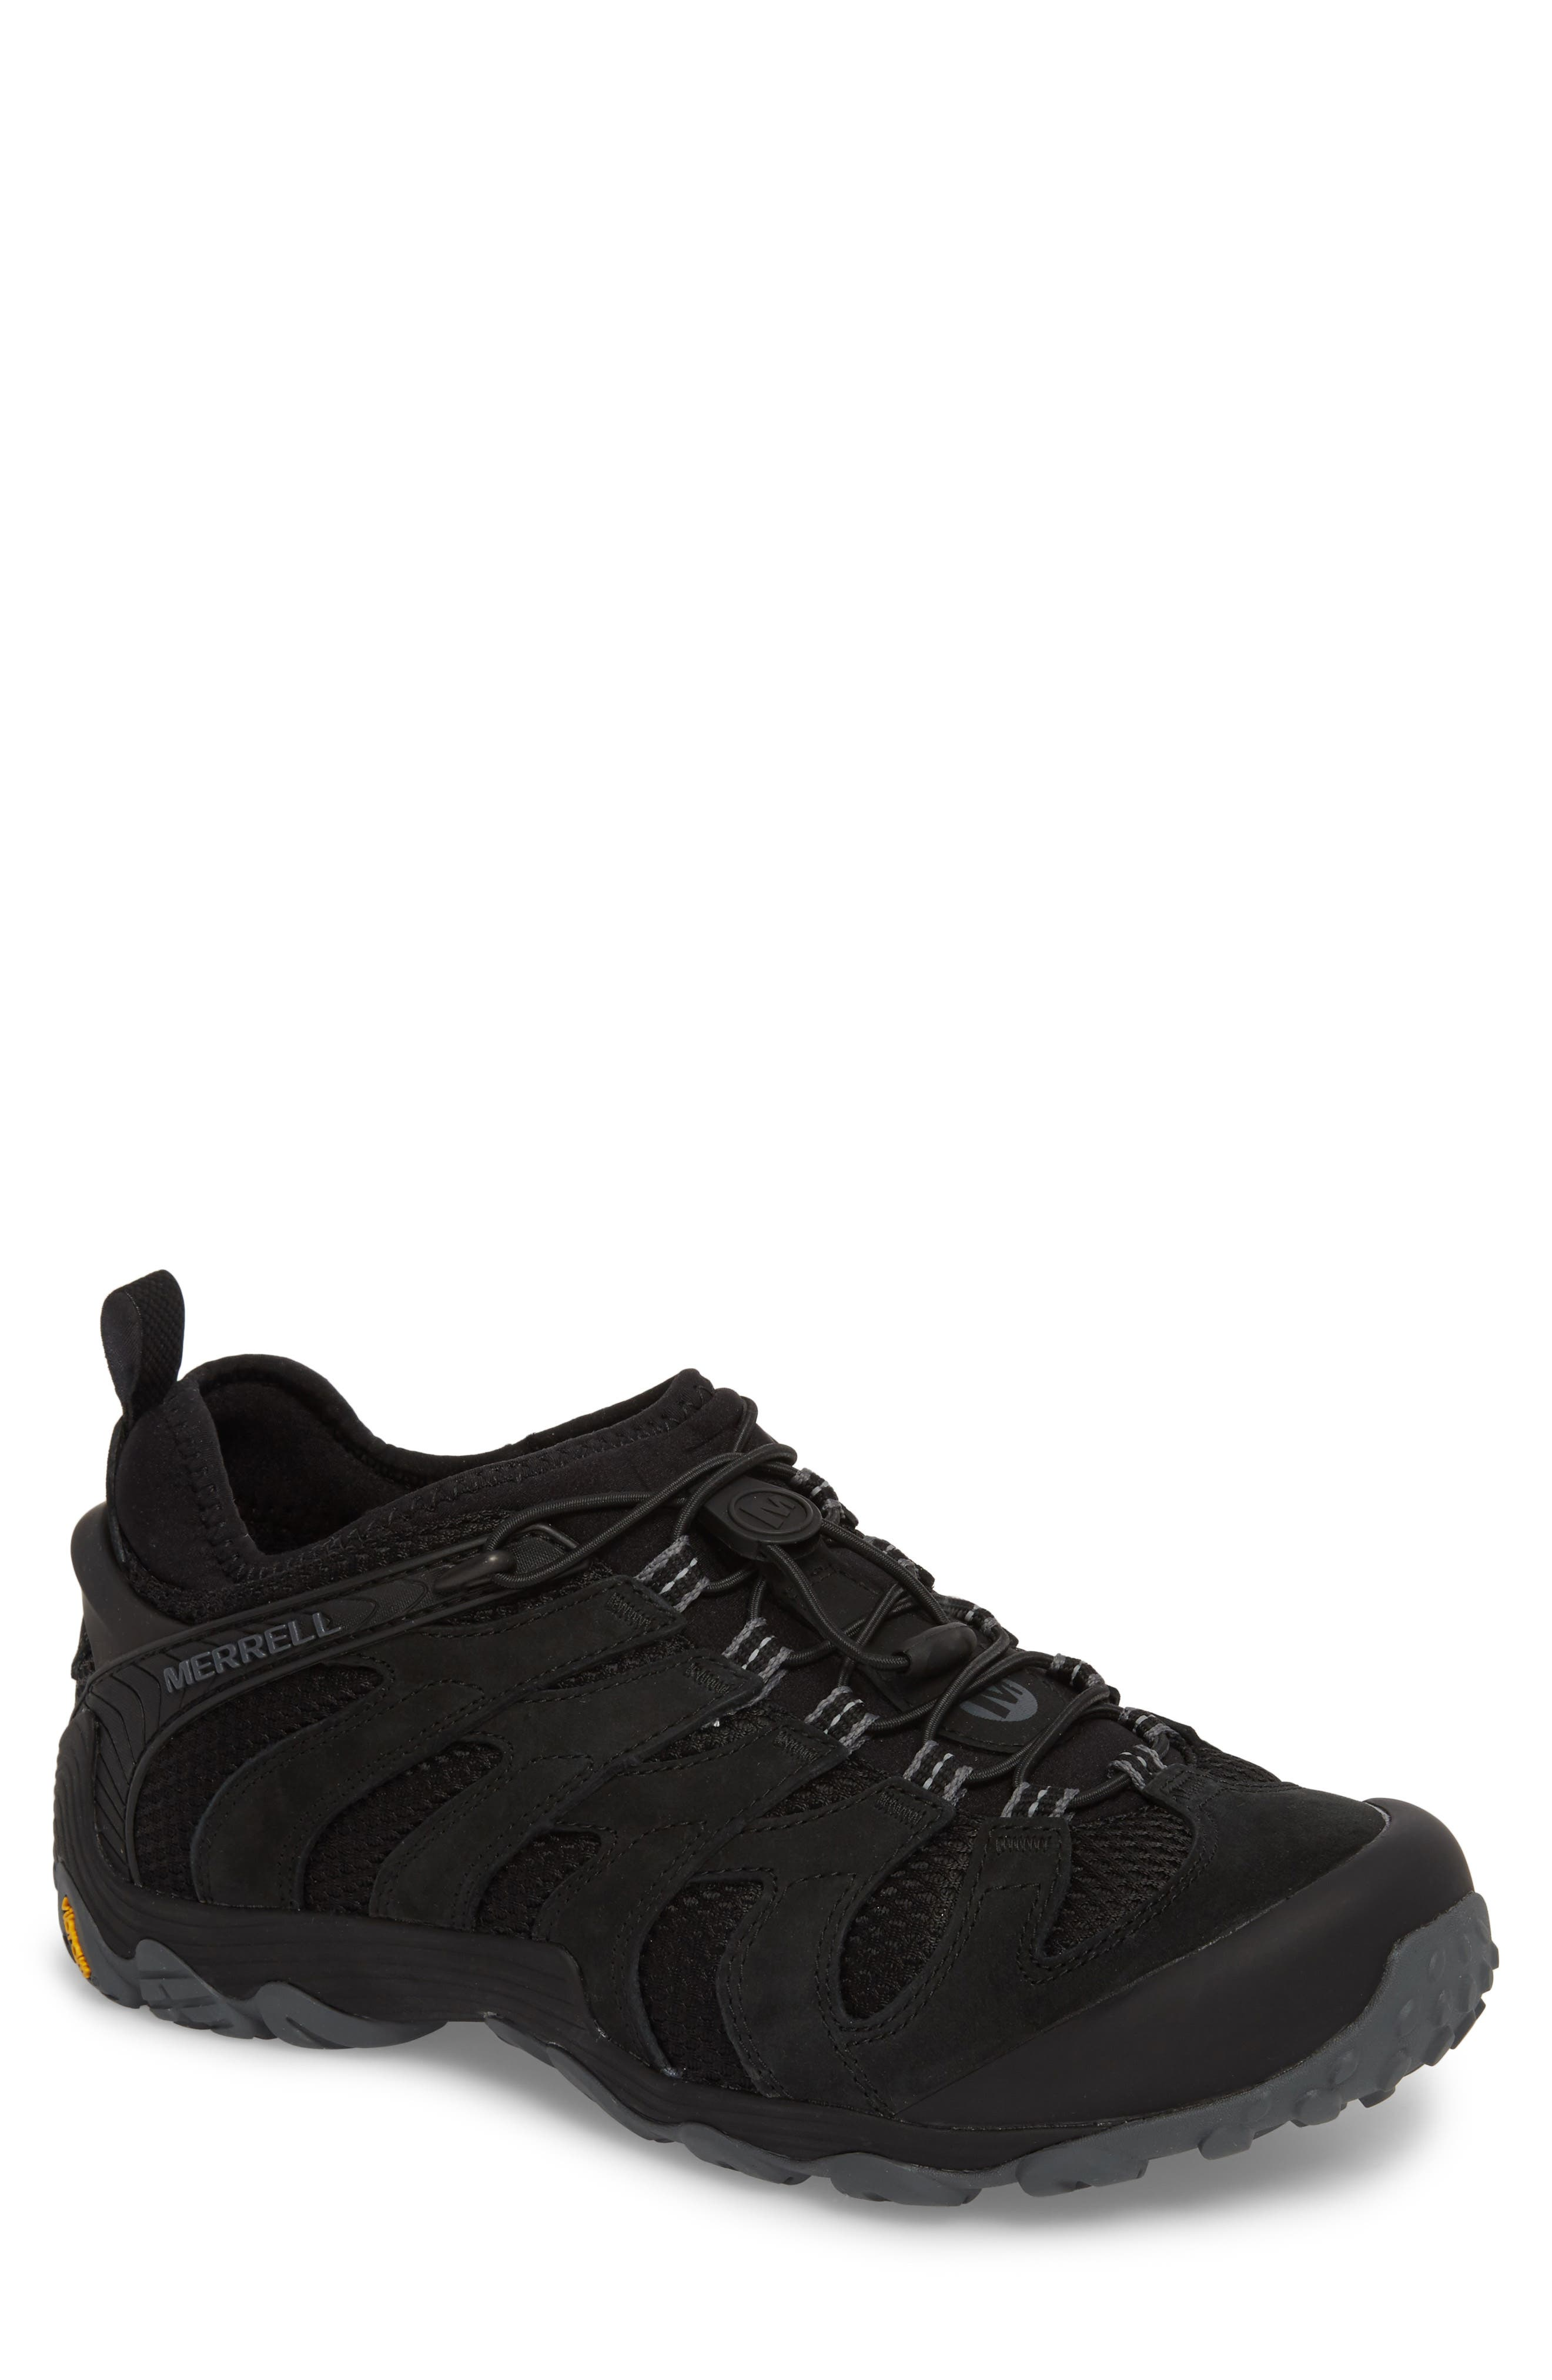 MERRELL,                             Chameleon 7 Stretch Hiking Shoe,                             Main thumbnail 1, color,                             BLACK